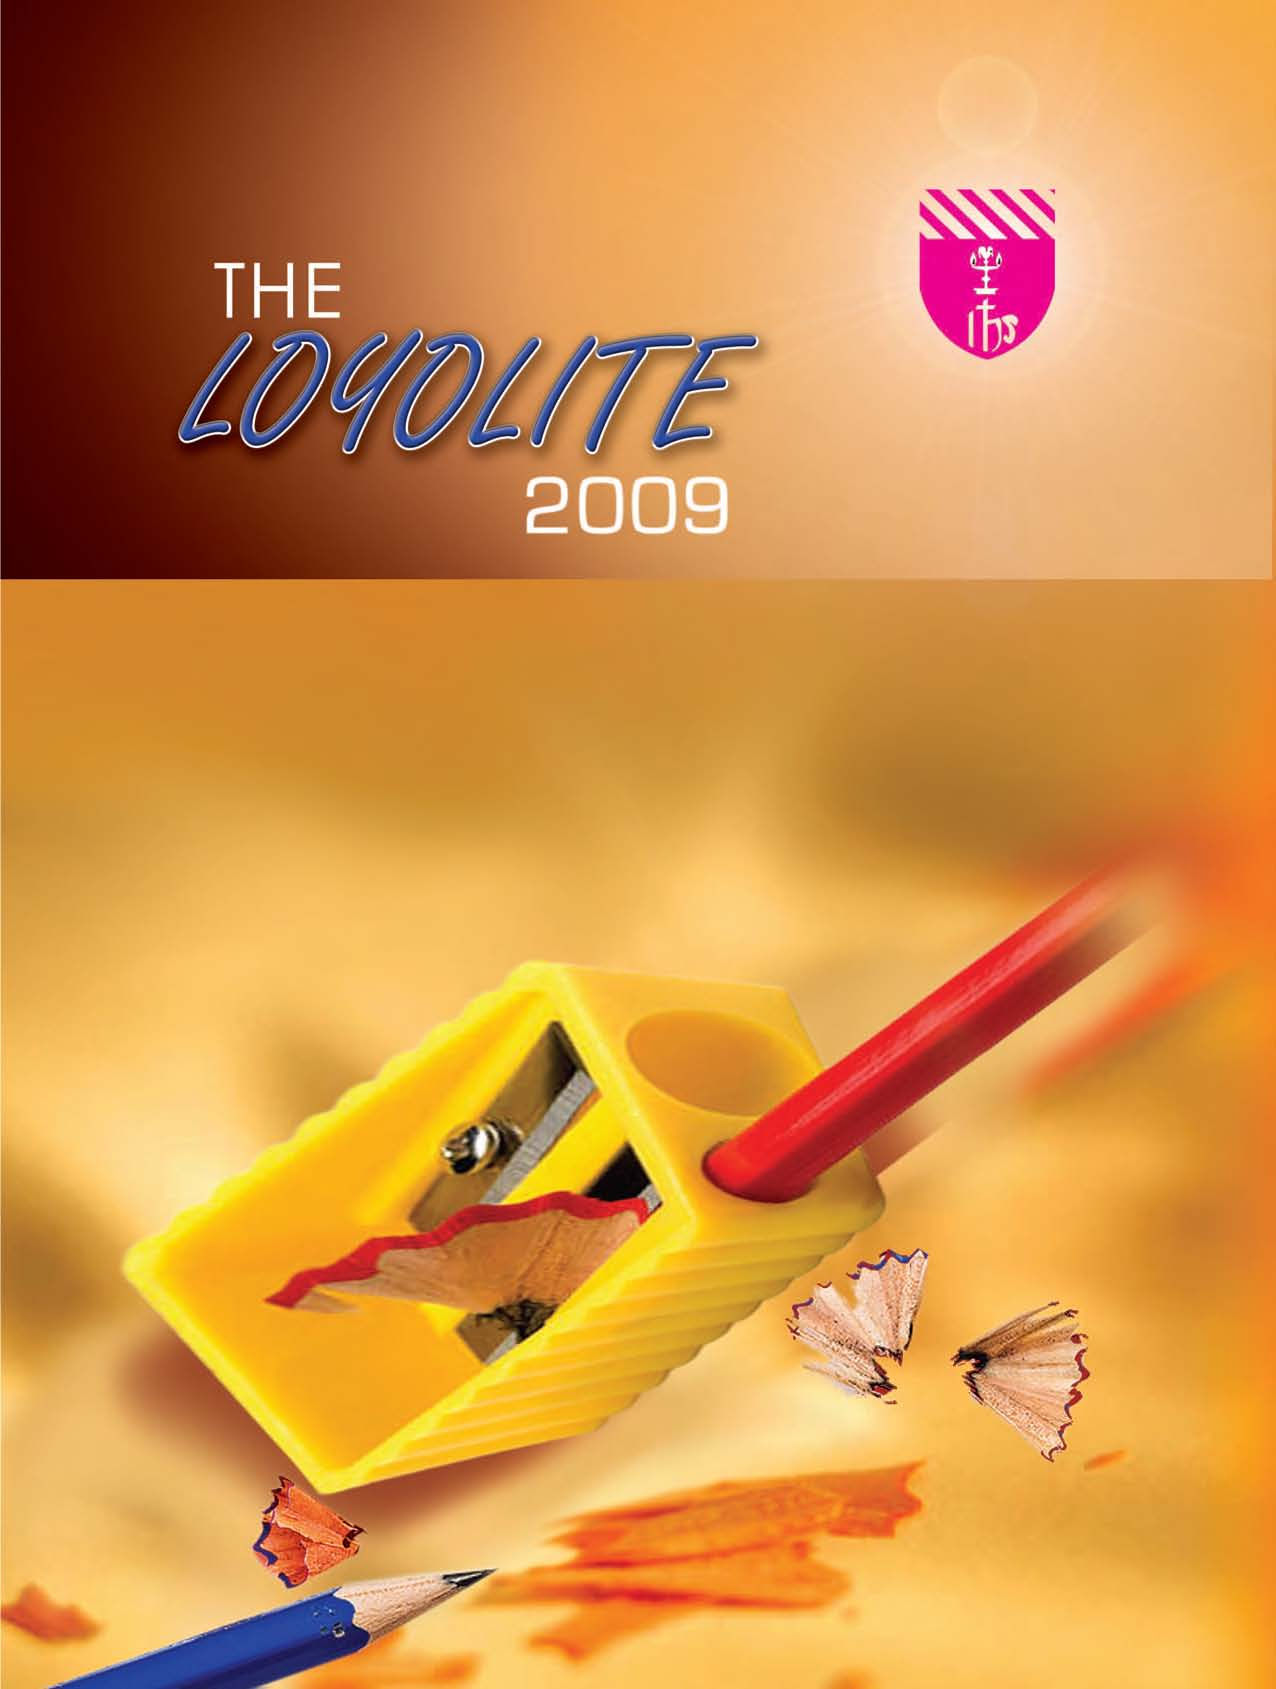 The Loyolite 2009 - school magazine of Loyola School, Trivandrum